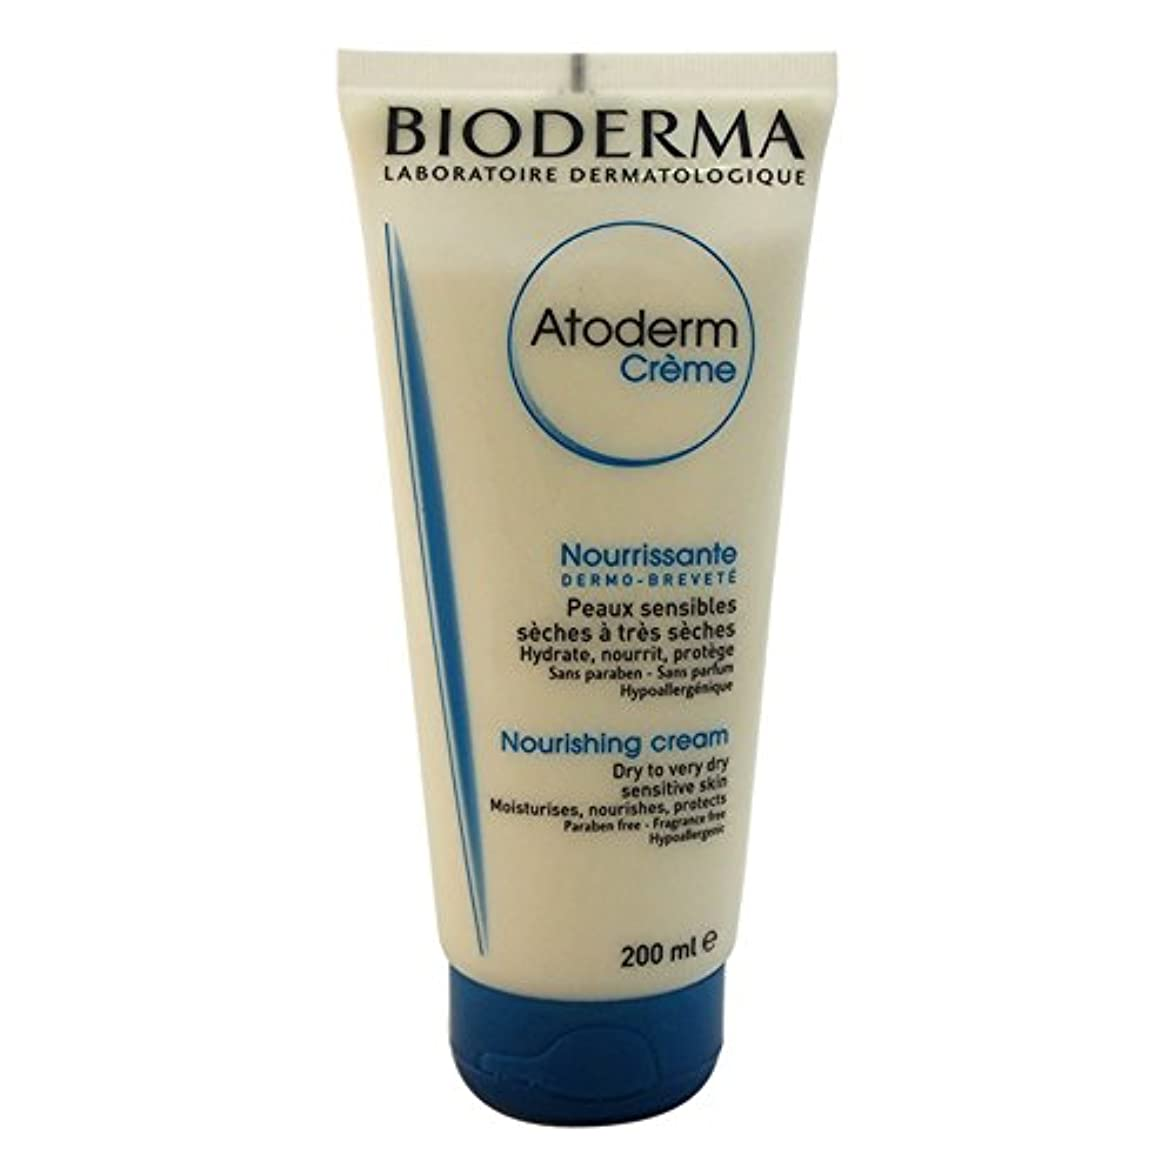 Bioderma - Atoderm Creme Ultra-Nourishing Cream (200 ml) [並行輸入品]